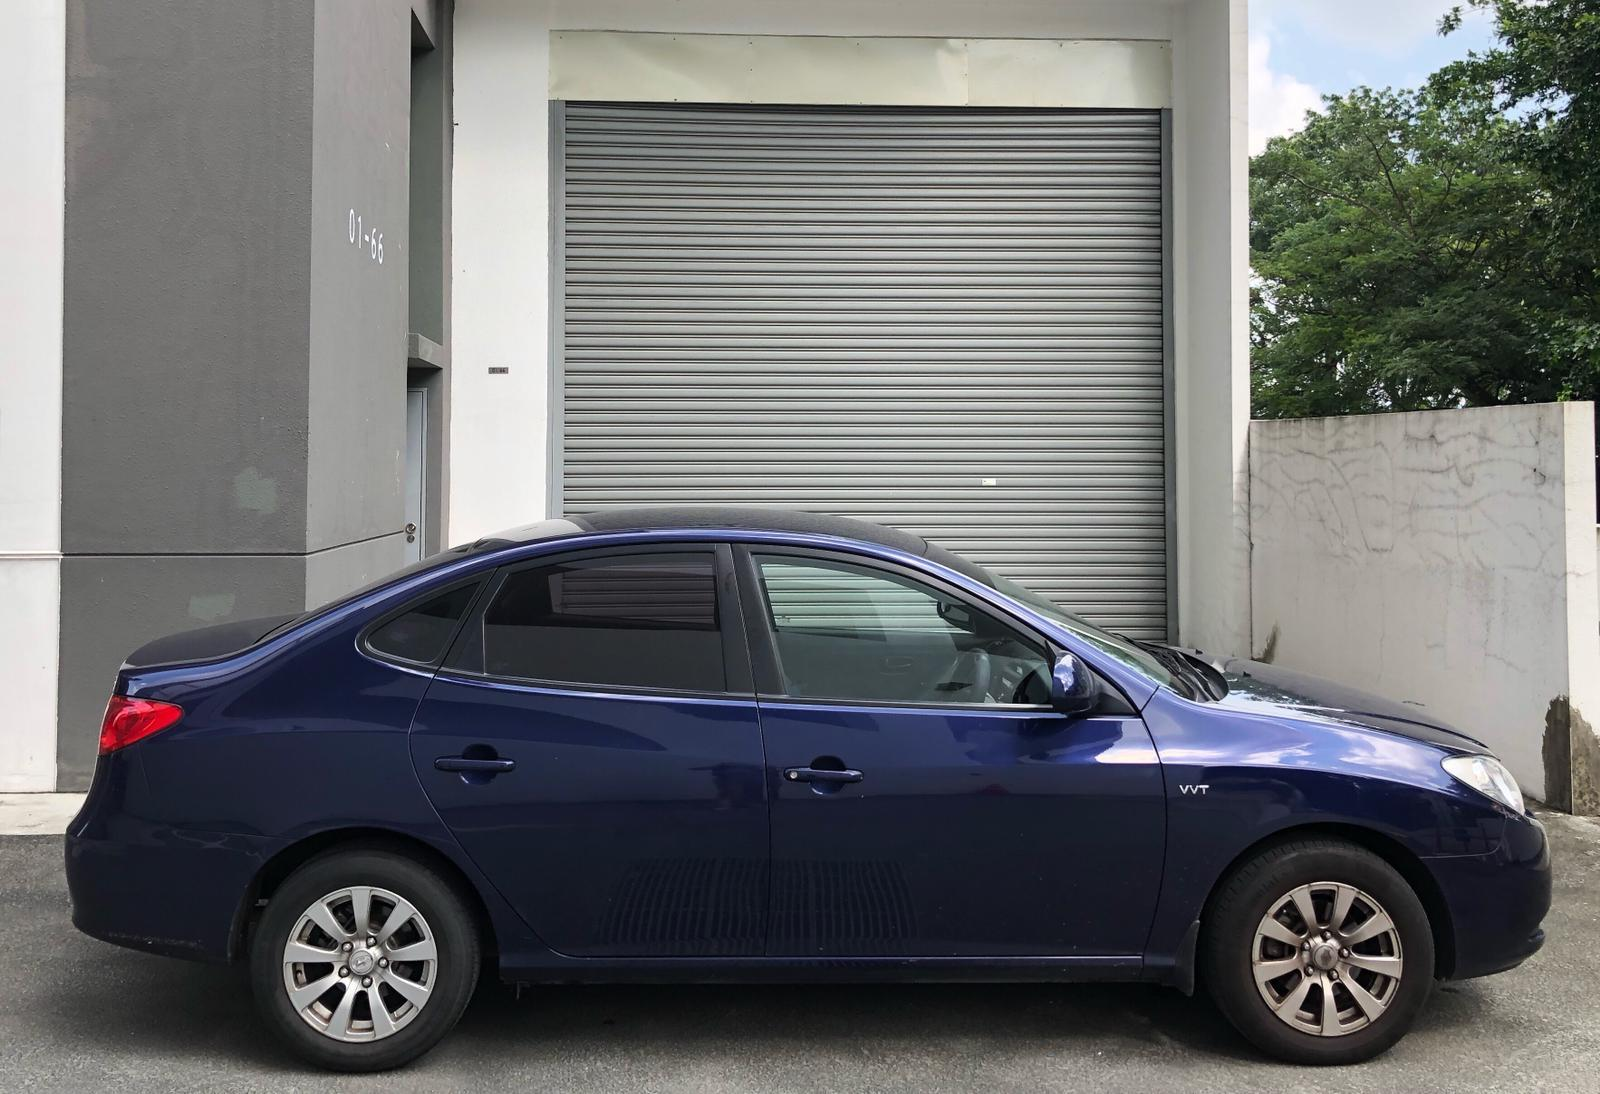 *Cheaper car*Hyundai Avante 1.6a Mazda Toyota Vios Wish Altis Car Axio Premio Allion Camry Estima Honda Jazz Fit Stream Civic Cars $50 perday PHV  For Rent Grab Rental Gojek Or Personal Use Low price and Cheap